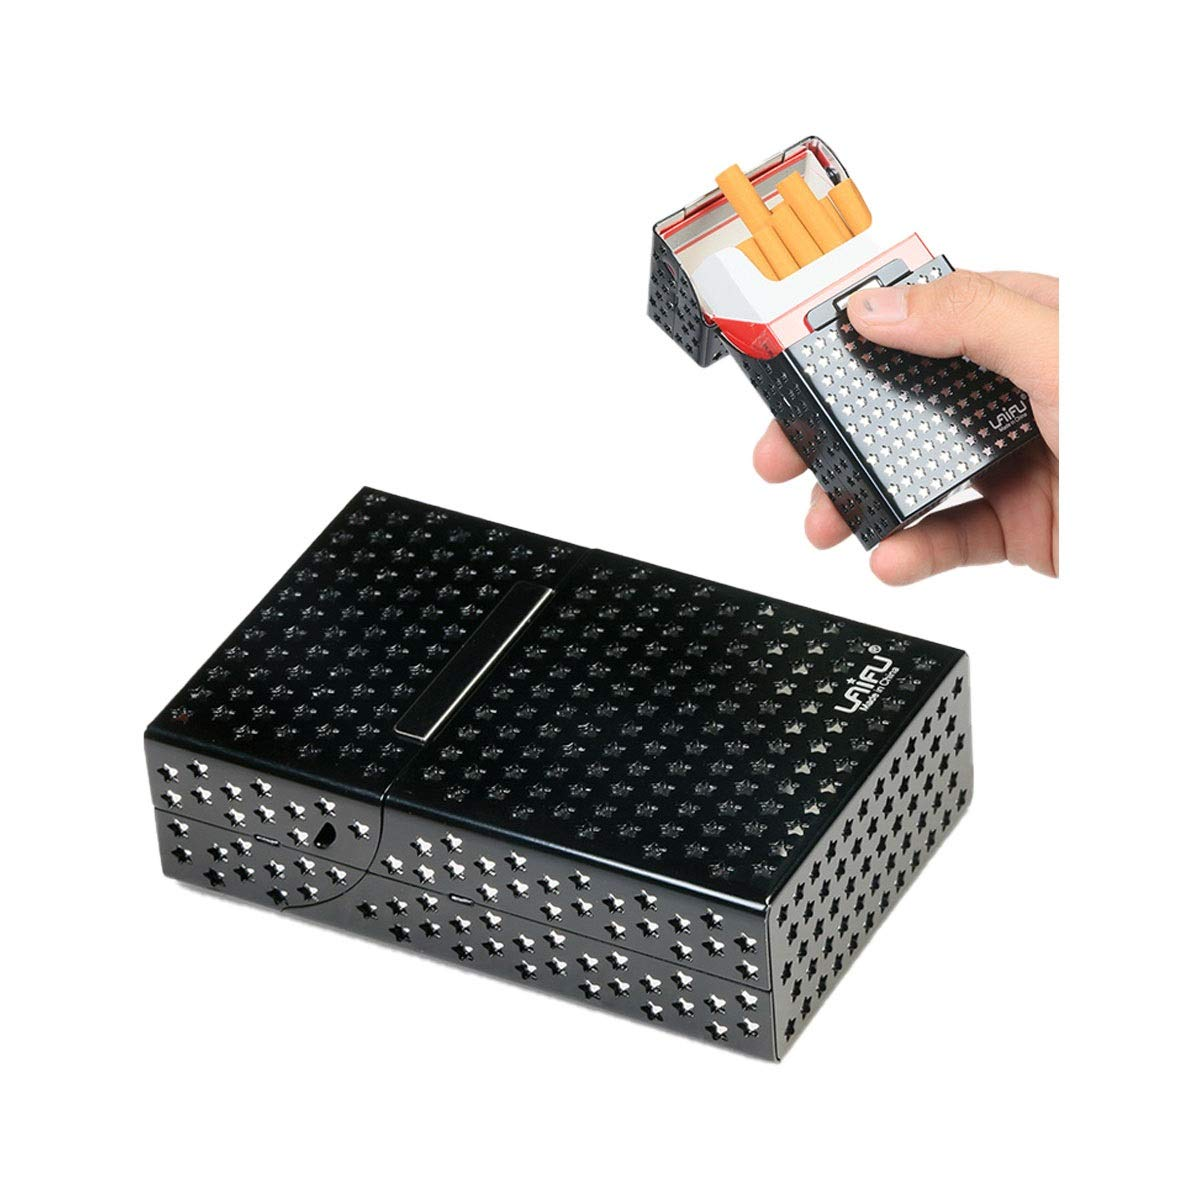 ZHONGYUE Cigarette Case, 20 Sticks, Stainless Steel Waterproof Pouch, Black, Red, Gold, Blue, Gray Unique Design, Sturdy and Lightweight. (Color : Blue)